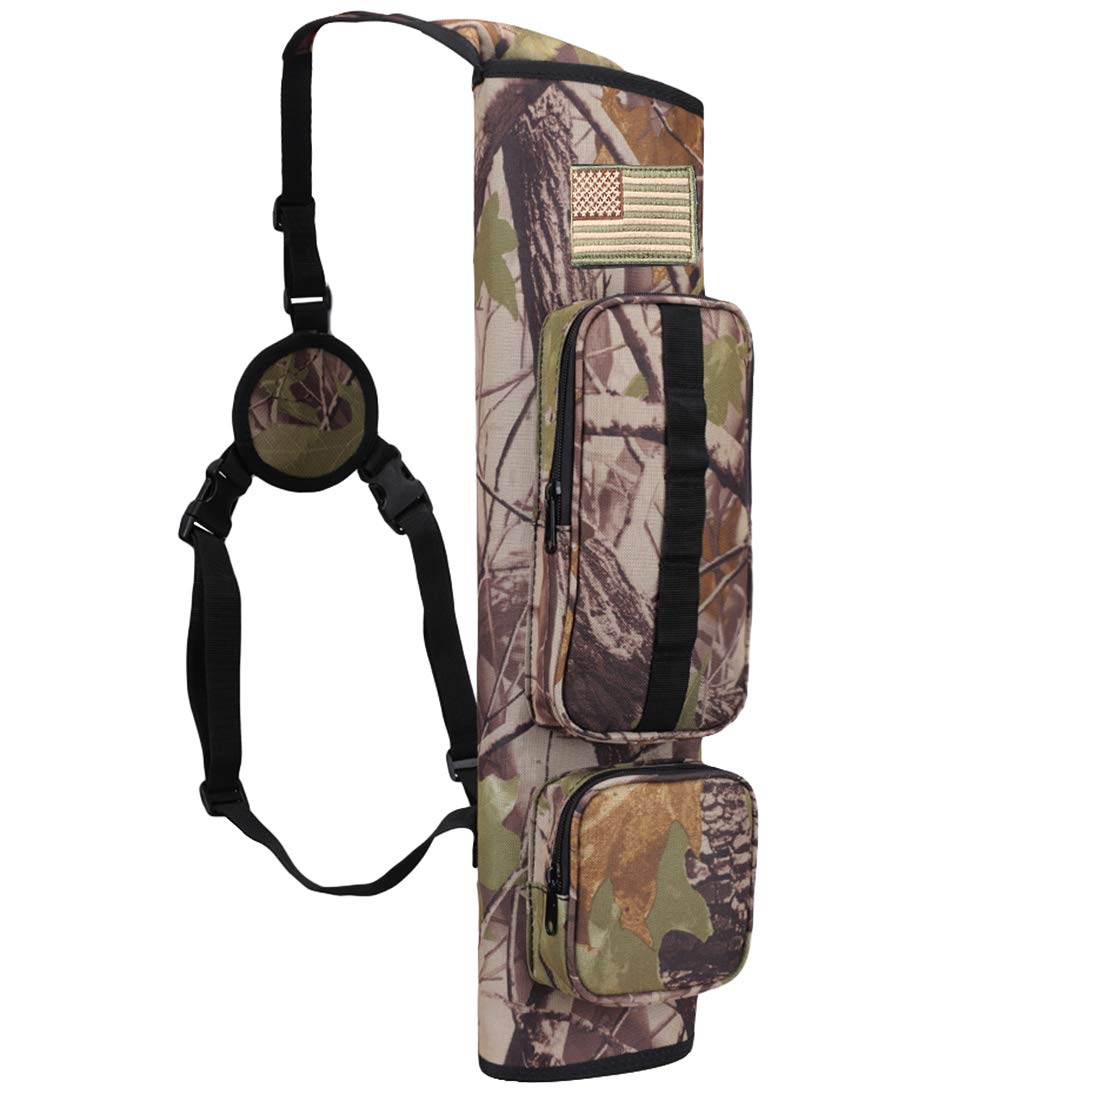 Kratarc Back Arrow Quiver Field Quiver Archery Shoulder Hanged Carry Hunting Target Arrow Quiver Bag with 2 Pockets (Camouflage) by Krayney